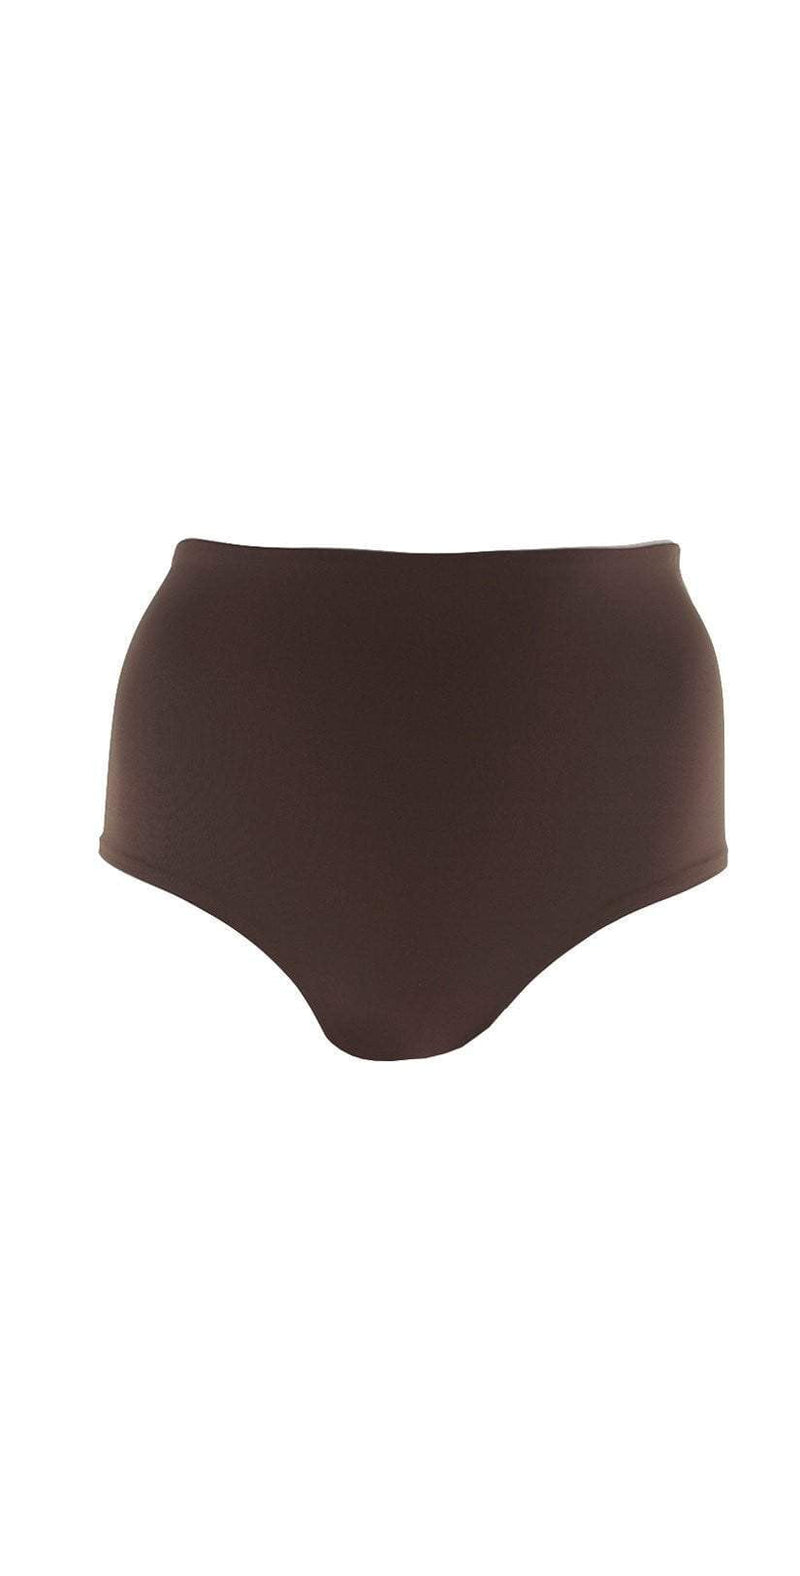 L Space Portia Bottom in Chocolate TSPOC18-CHO: